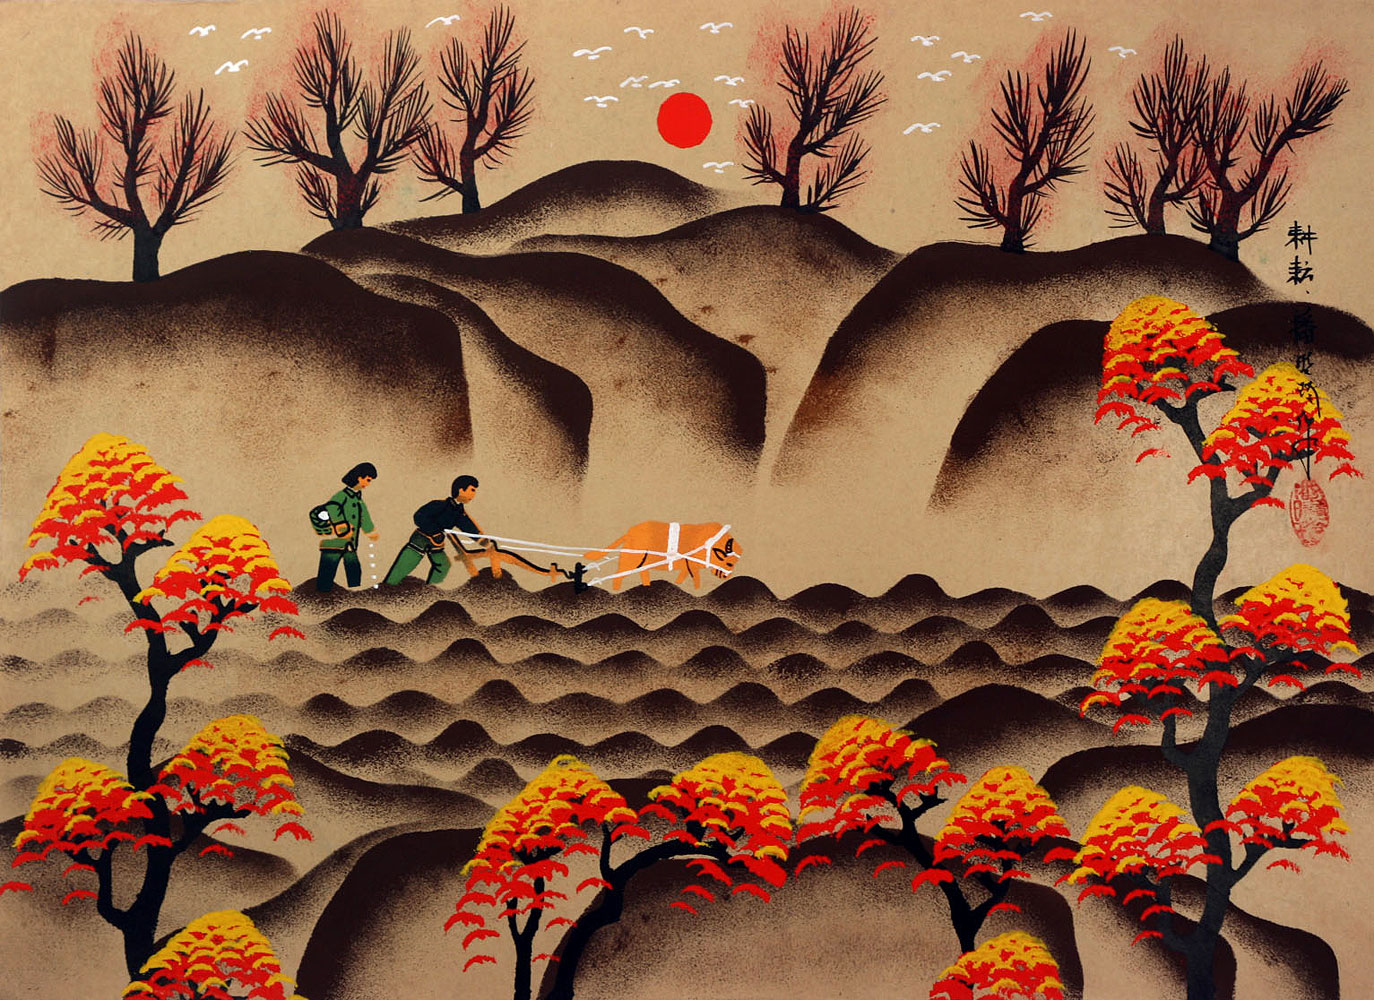 Plowing and Weeding - Chinese Peasant Folk Art Painting